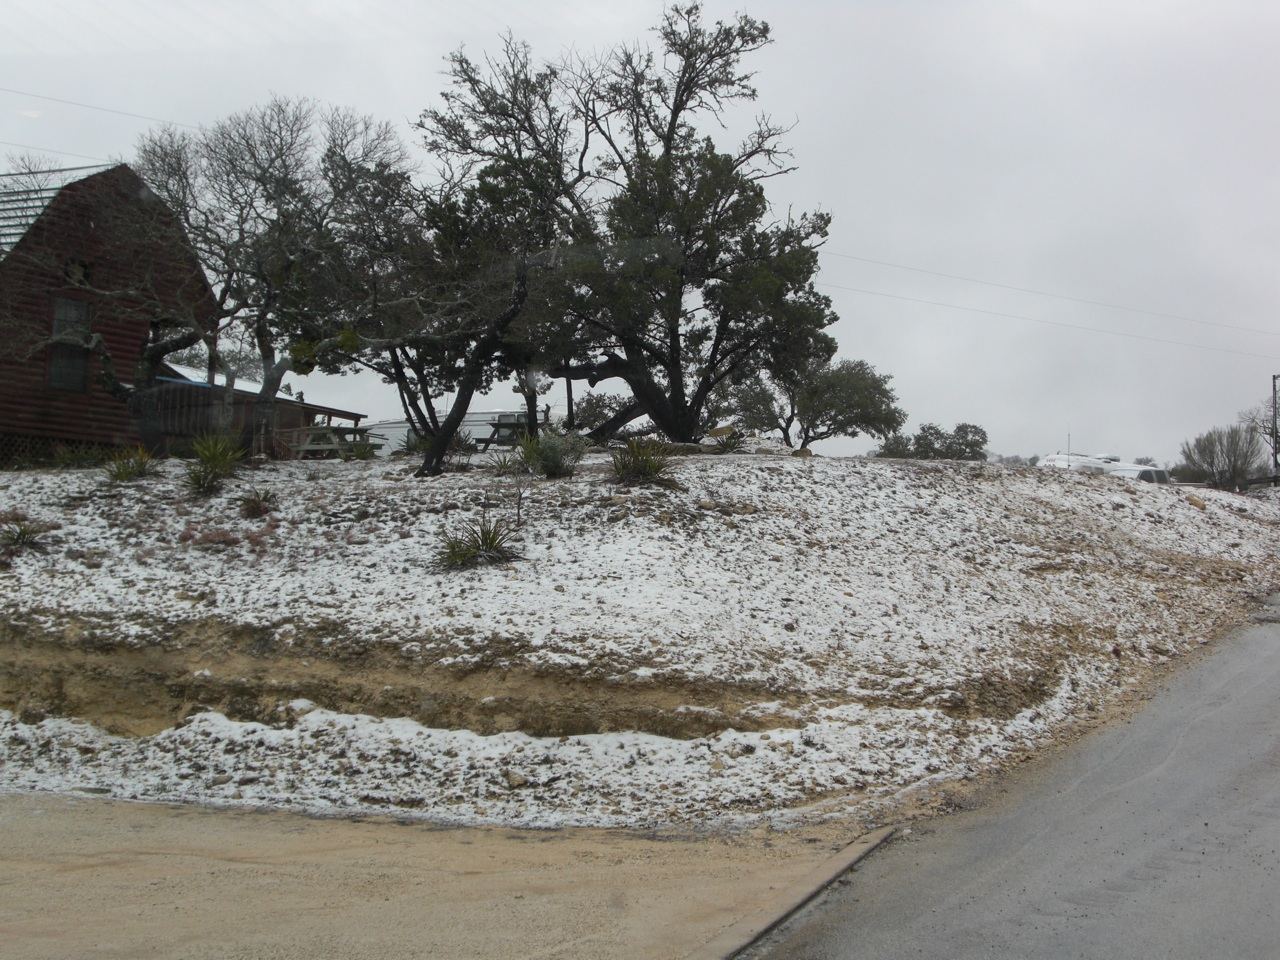 Arriving at Top Of The Hill RV Resort in Boerne, TX